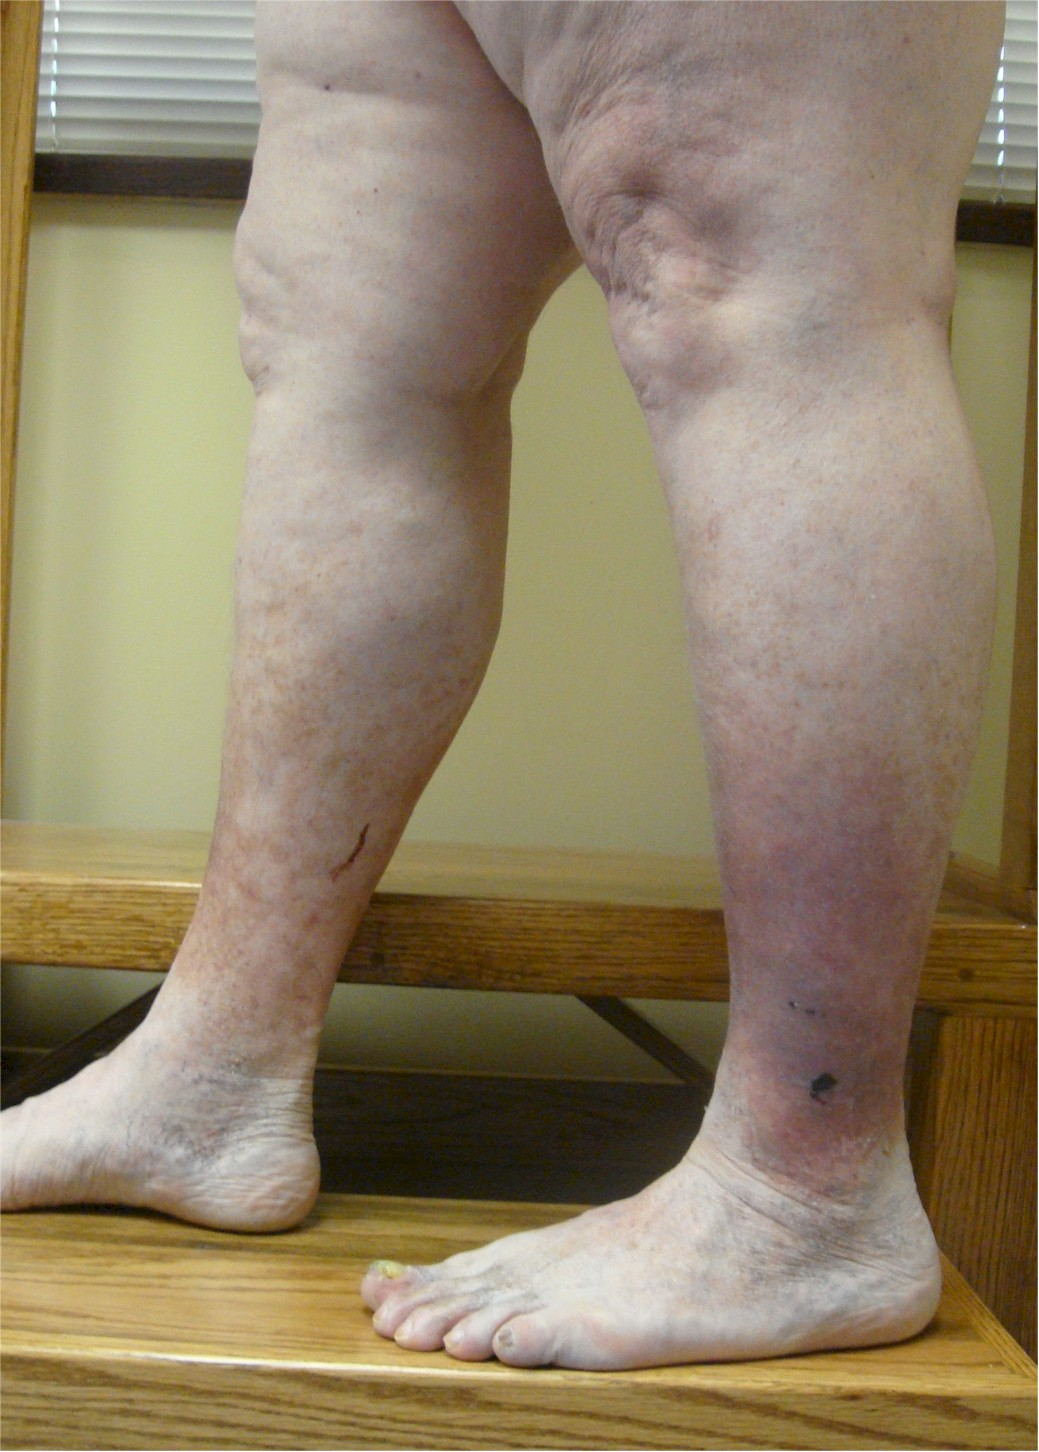 Vein Disorders, Vein Specialists of the Carolinas